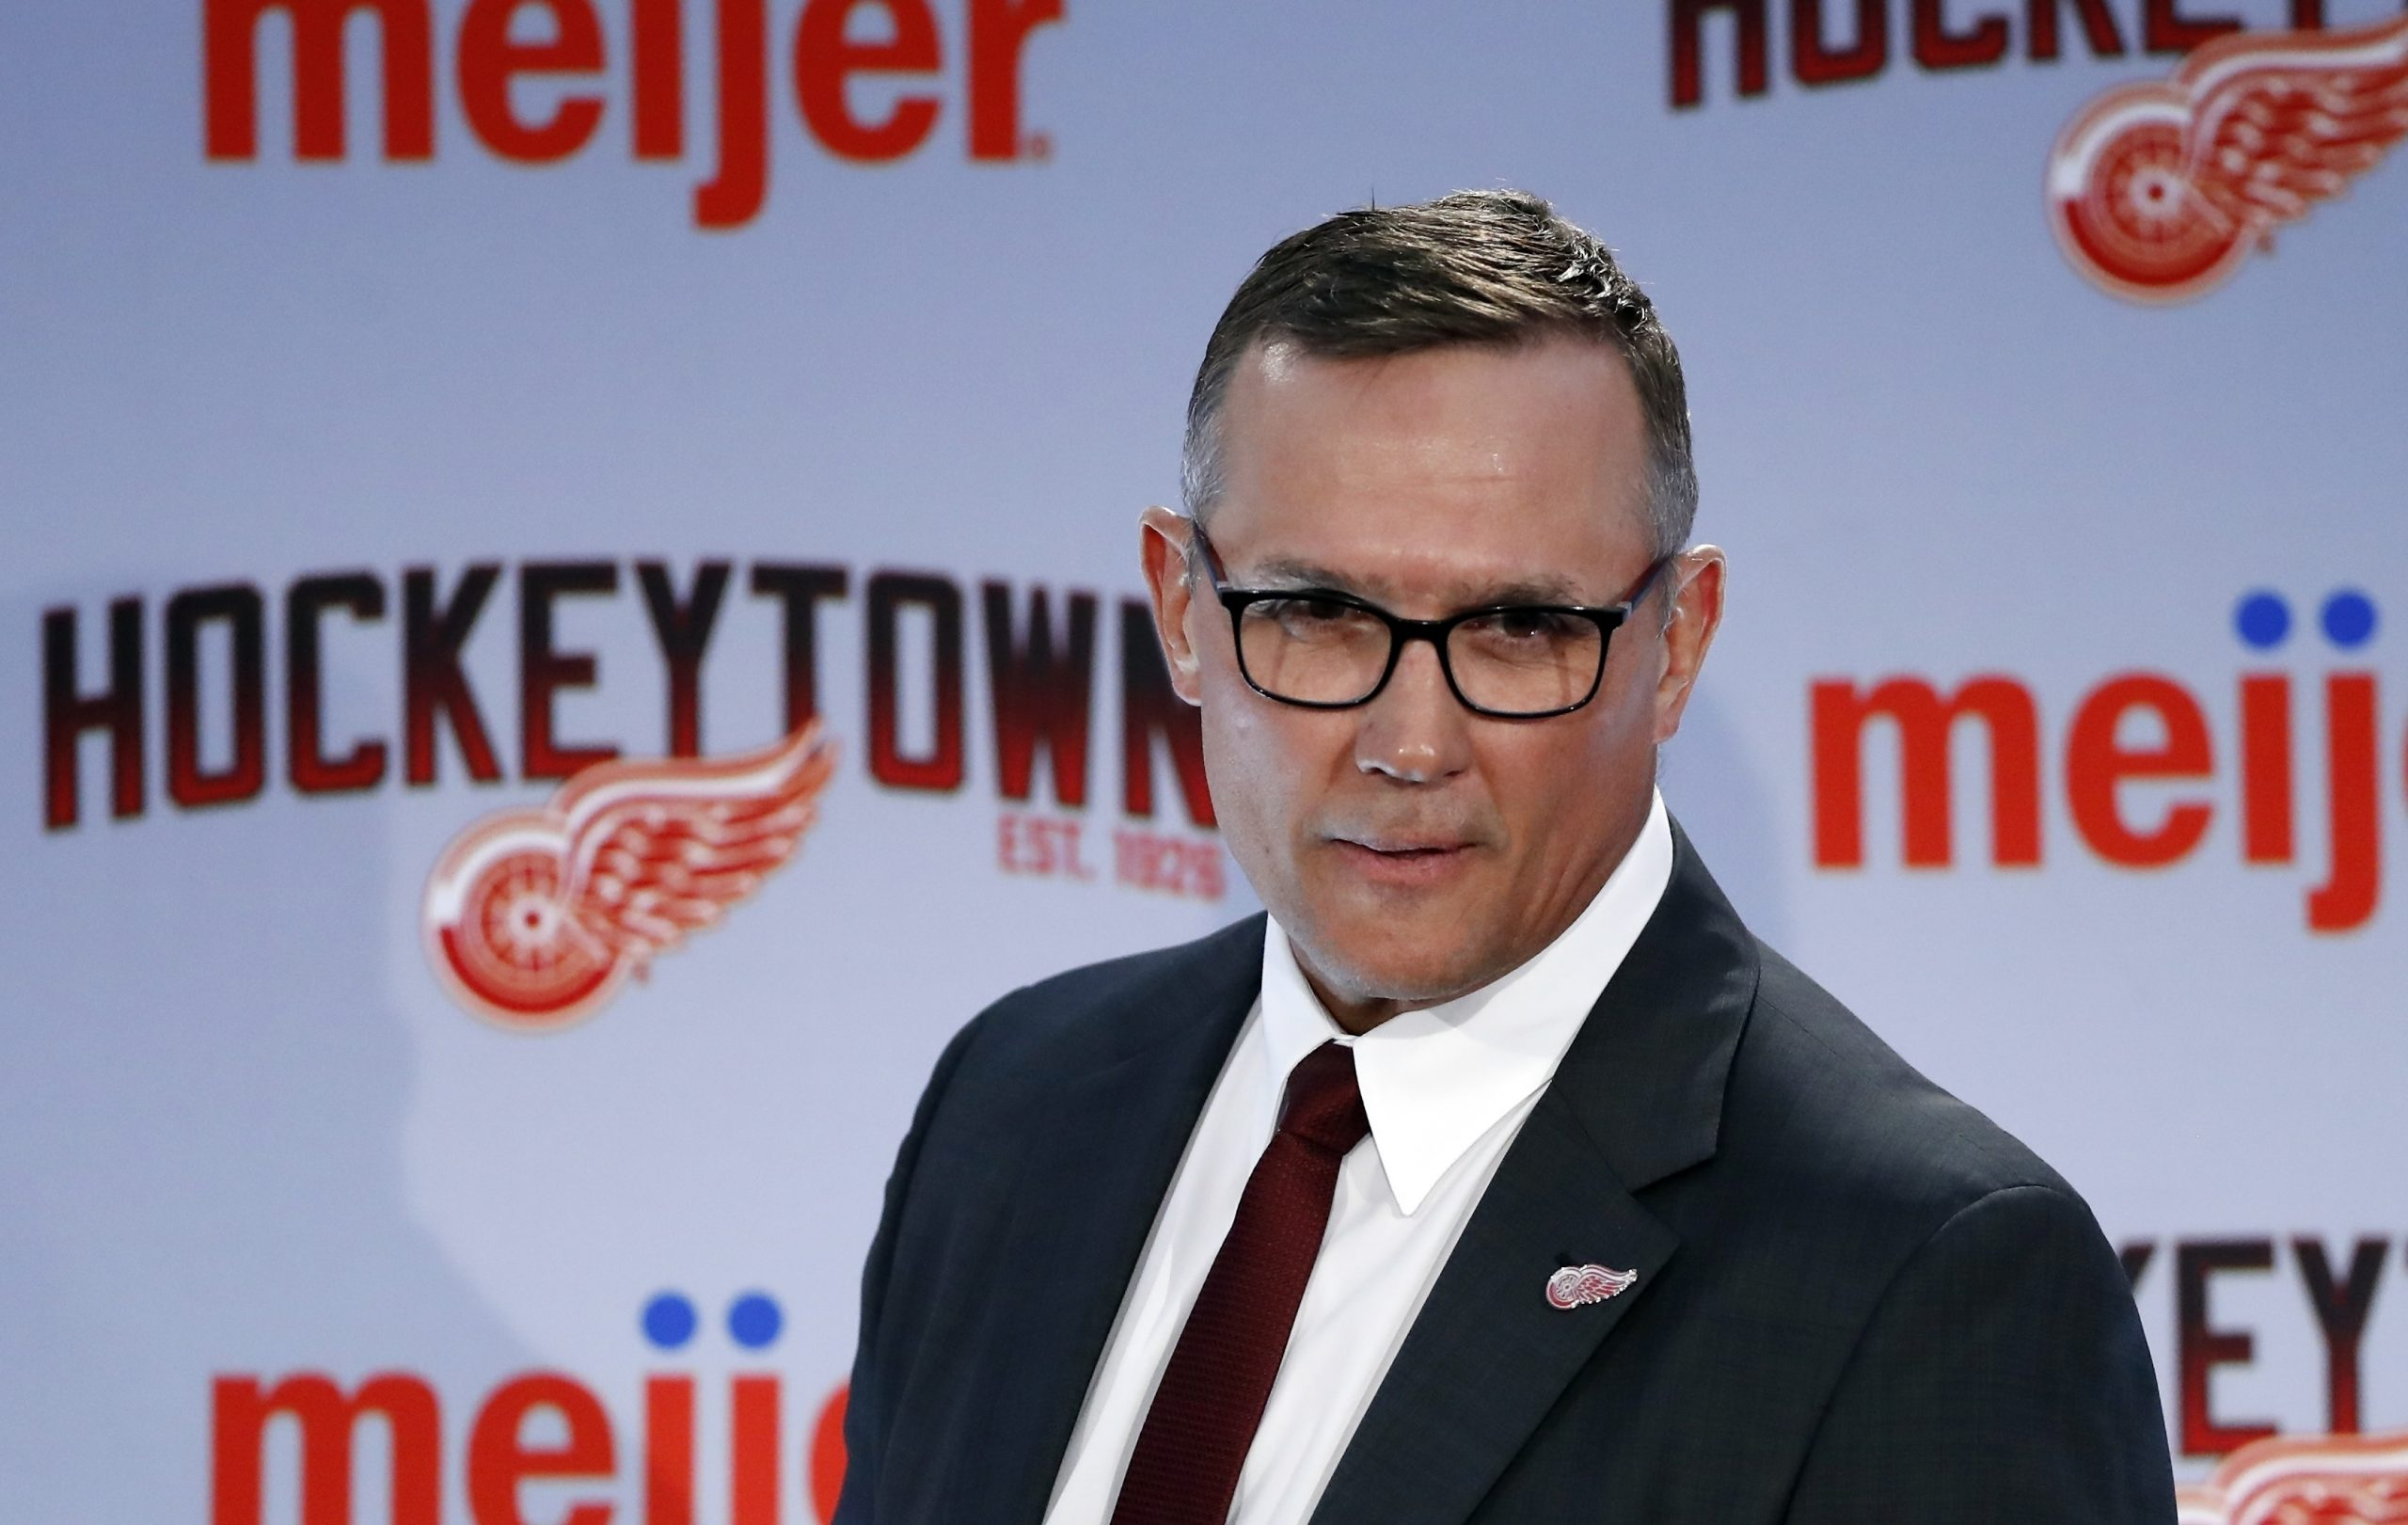 Red Wings keeping Jeff Blashill as coach, GM Steve Yzerman says